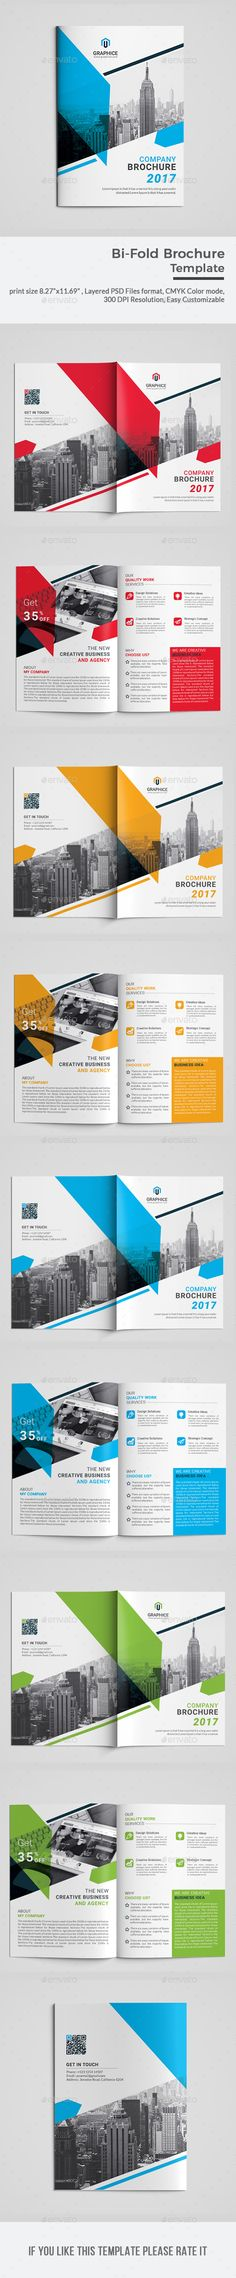 Bi-fold Brochure Template Print size & Bleed Setting inch), Layered PSD Files format, CMYK Color D Travel Brochure Template, Bi Fold Brochure, Corporate Brochure, Business Brochure, Brochure Design, Flyer Design, Layout Design, Cs6 Photoshop, Business Cards Layout